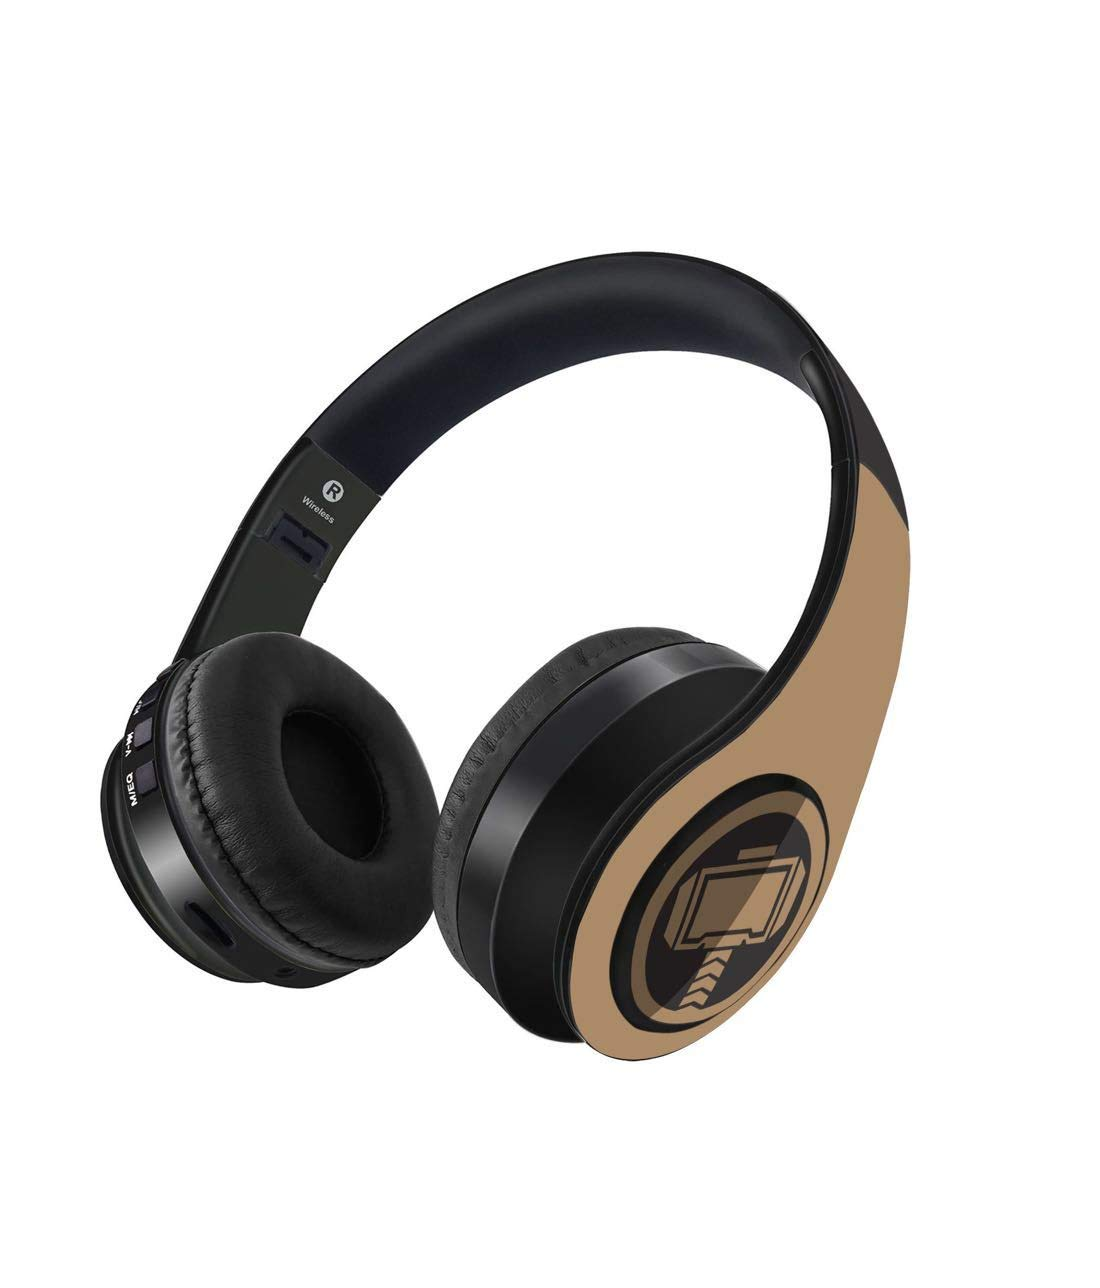 Macmerise Iconic Thor Decibel Wireless On Ear Headphones